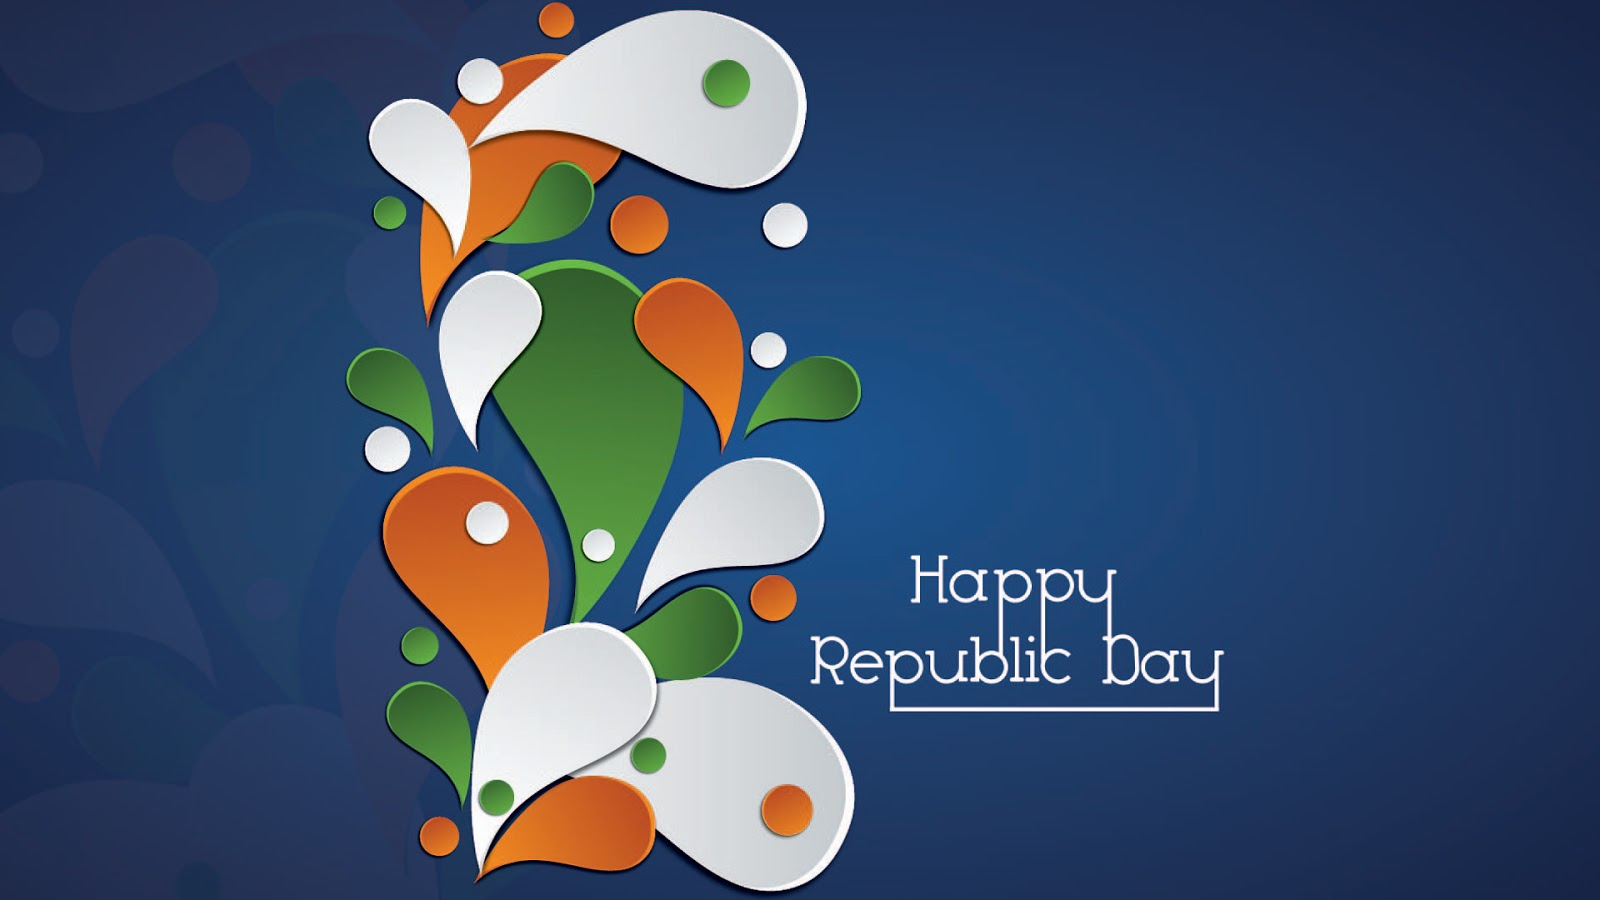 republic day essay in english for kids Republic day short essays for kids in english hindi find this pin and more on happy independence day 2014 by hunnygarg31 republic day short essays for kids in.